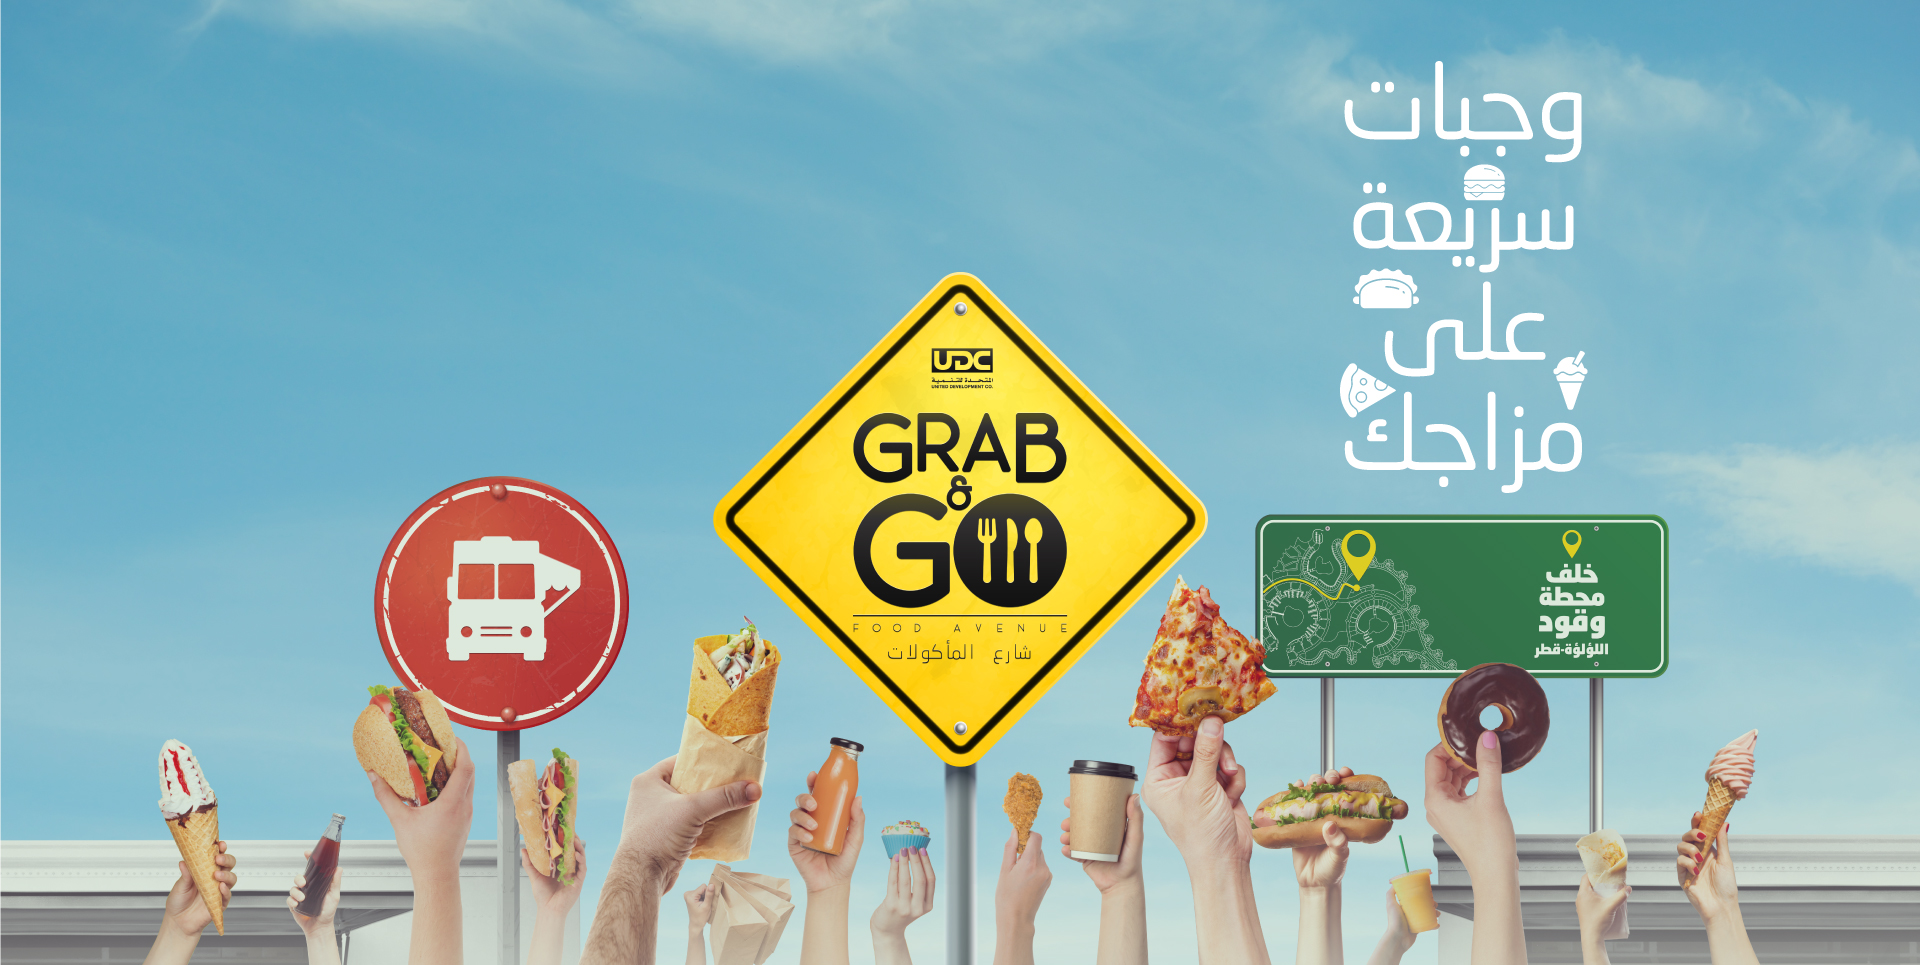 Grab & Go - Food Avenue